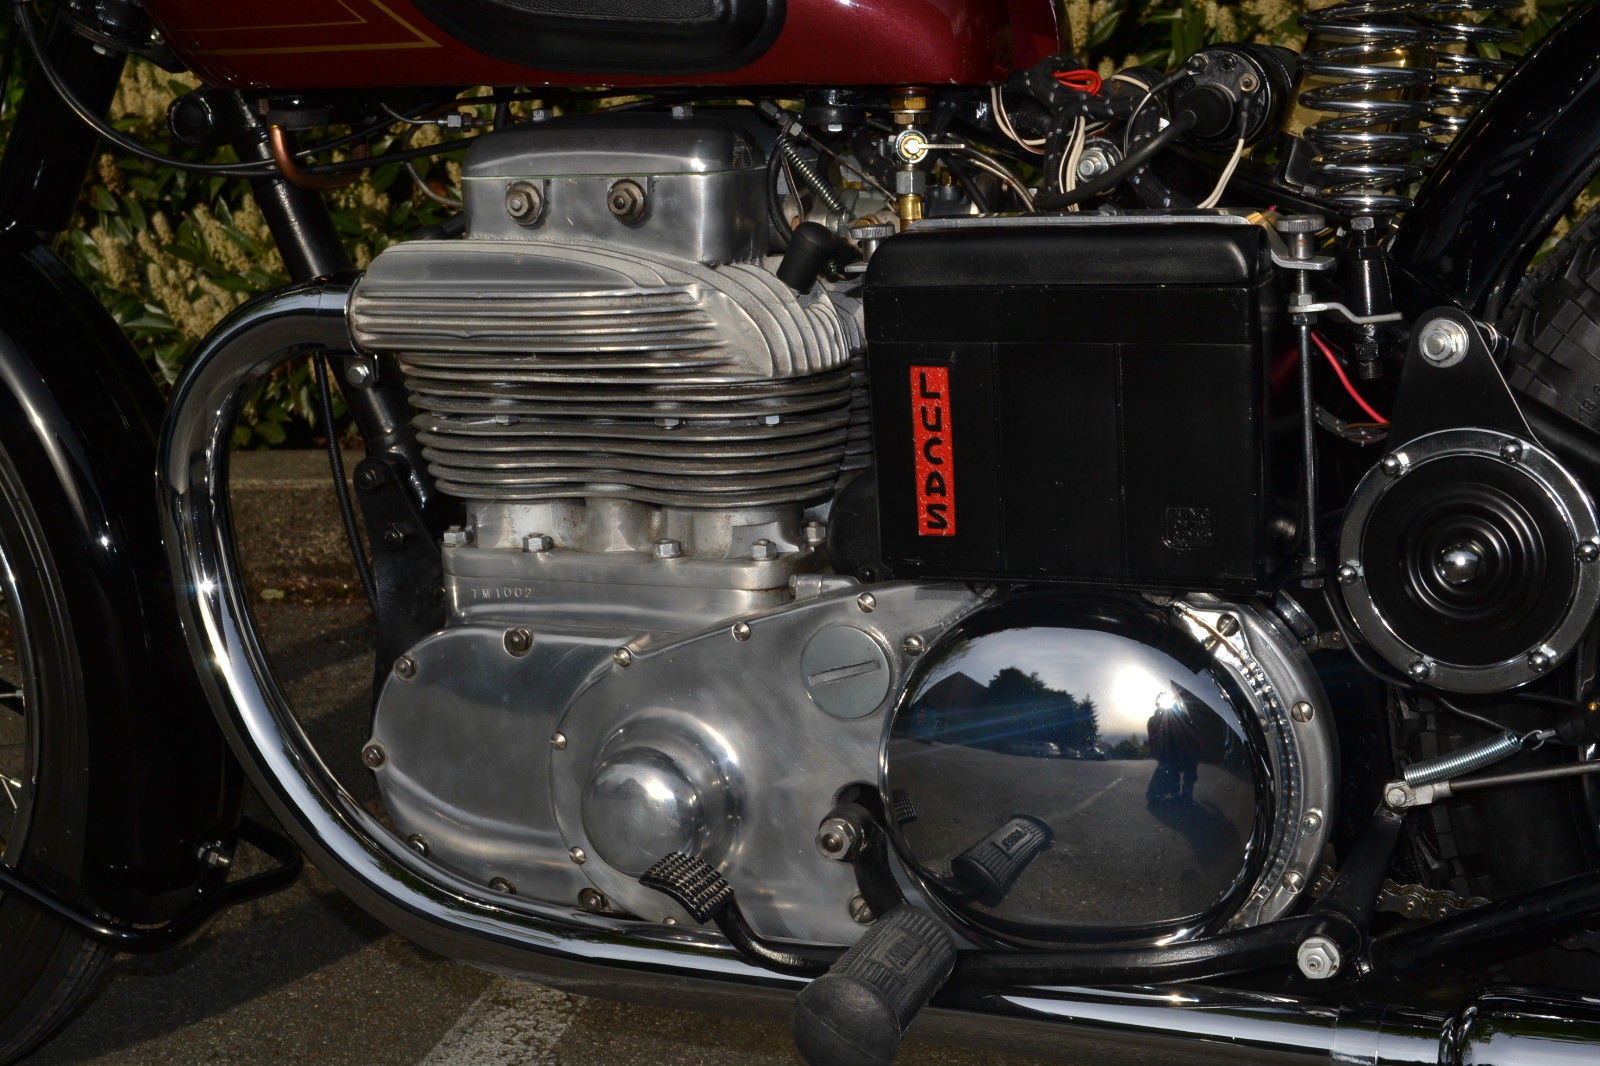 Ariel Square Four - 1952 - Engine and Transmission, Lucas Battery Box and Footrest.